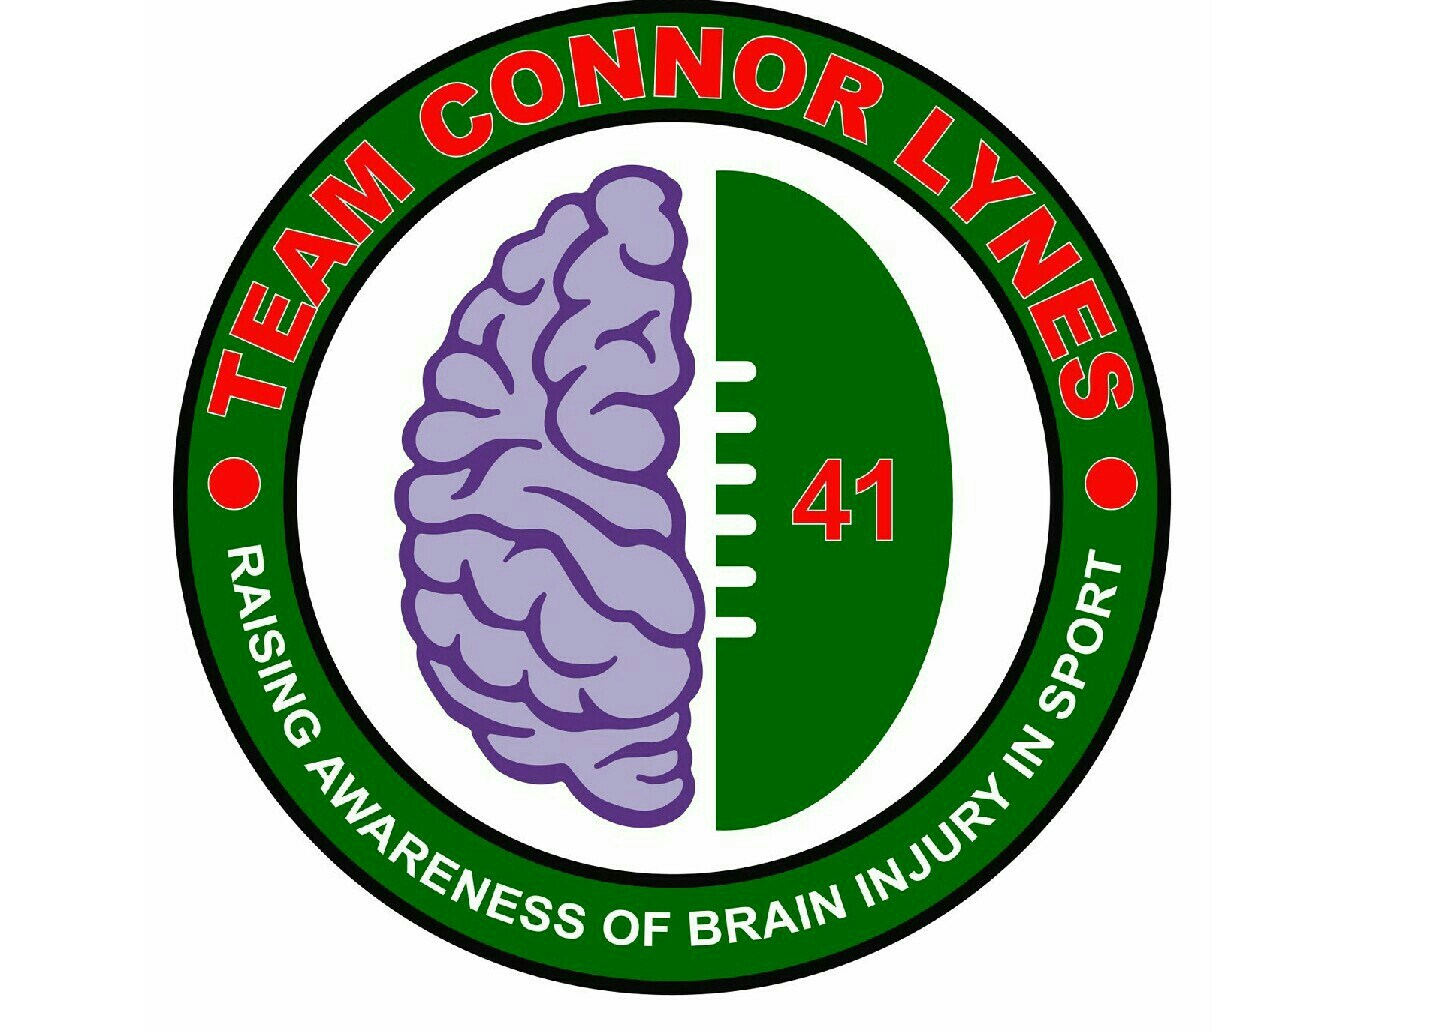 Team Connor Lynes